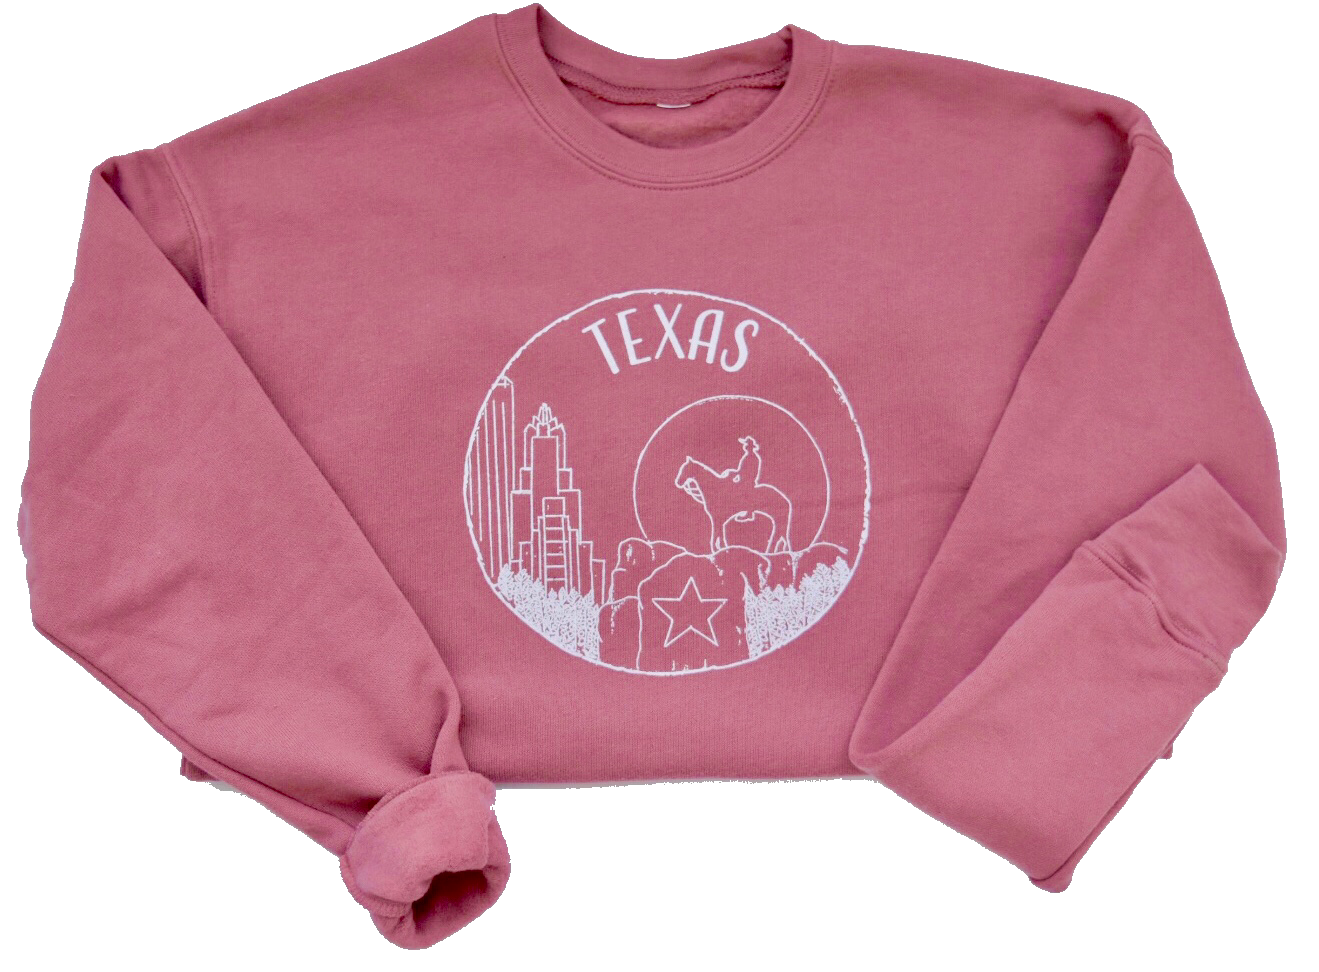 Texas - Dusty Rose Sweatshirt Unisex - Shop Back Home